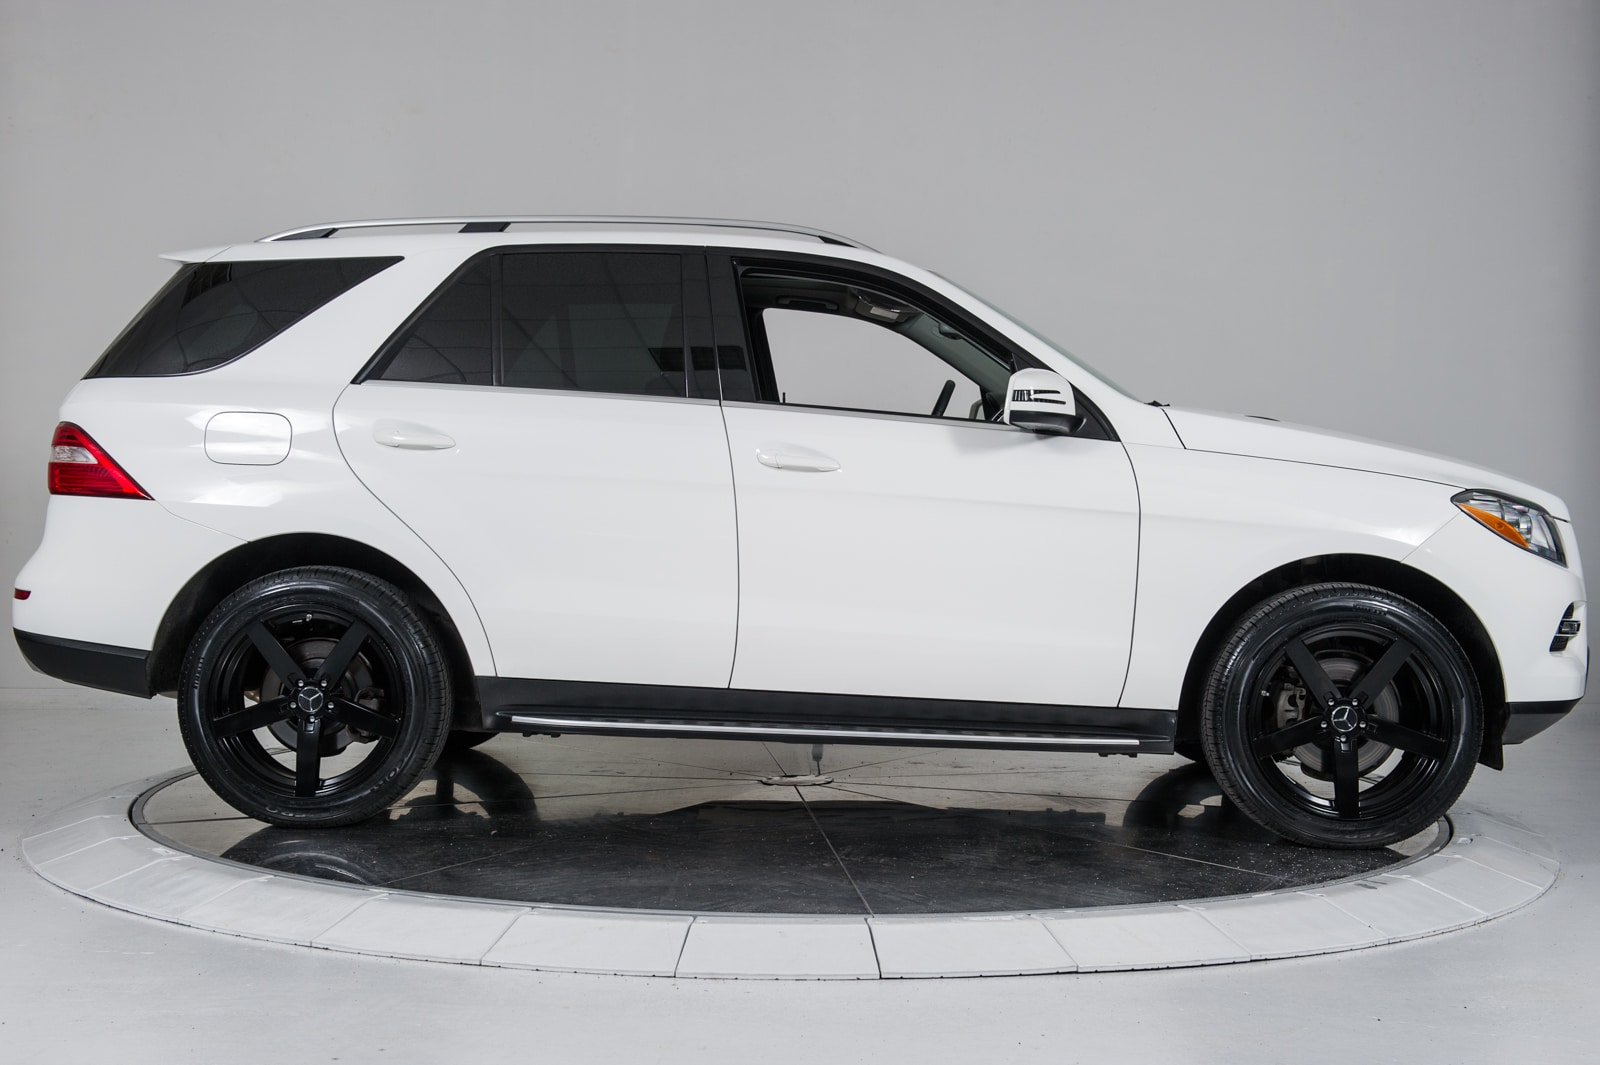 Used 2014 mercedes benz ml350 4matic for sale plainview for 2014 mercedes benz ml350 white